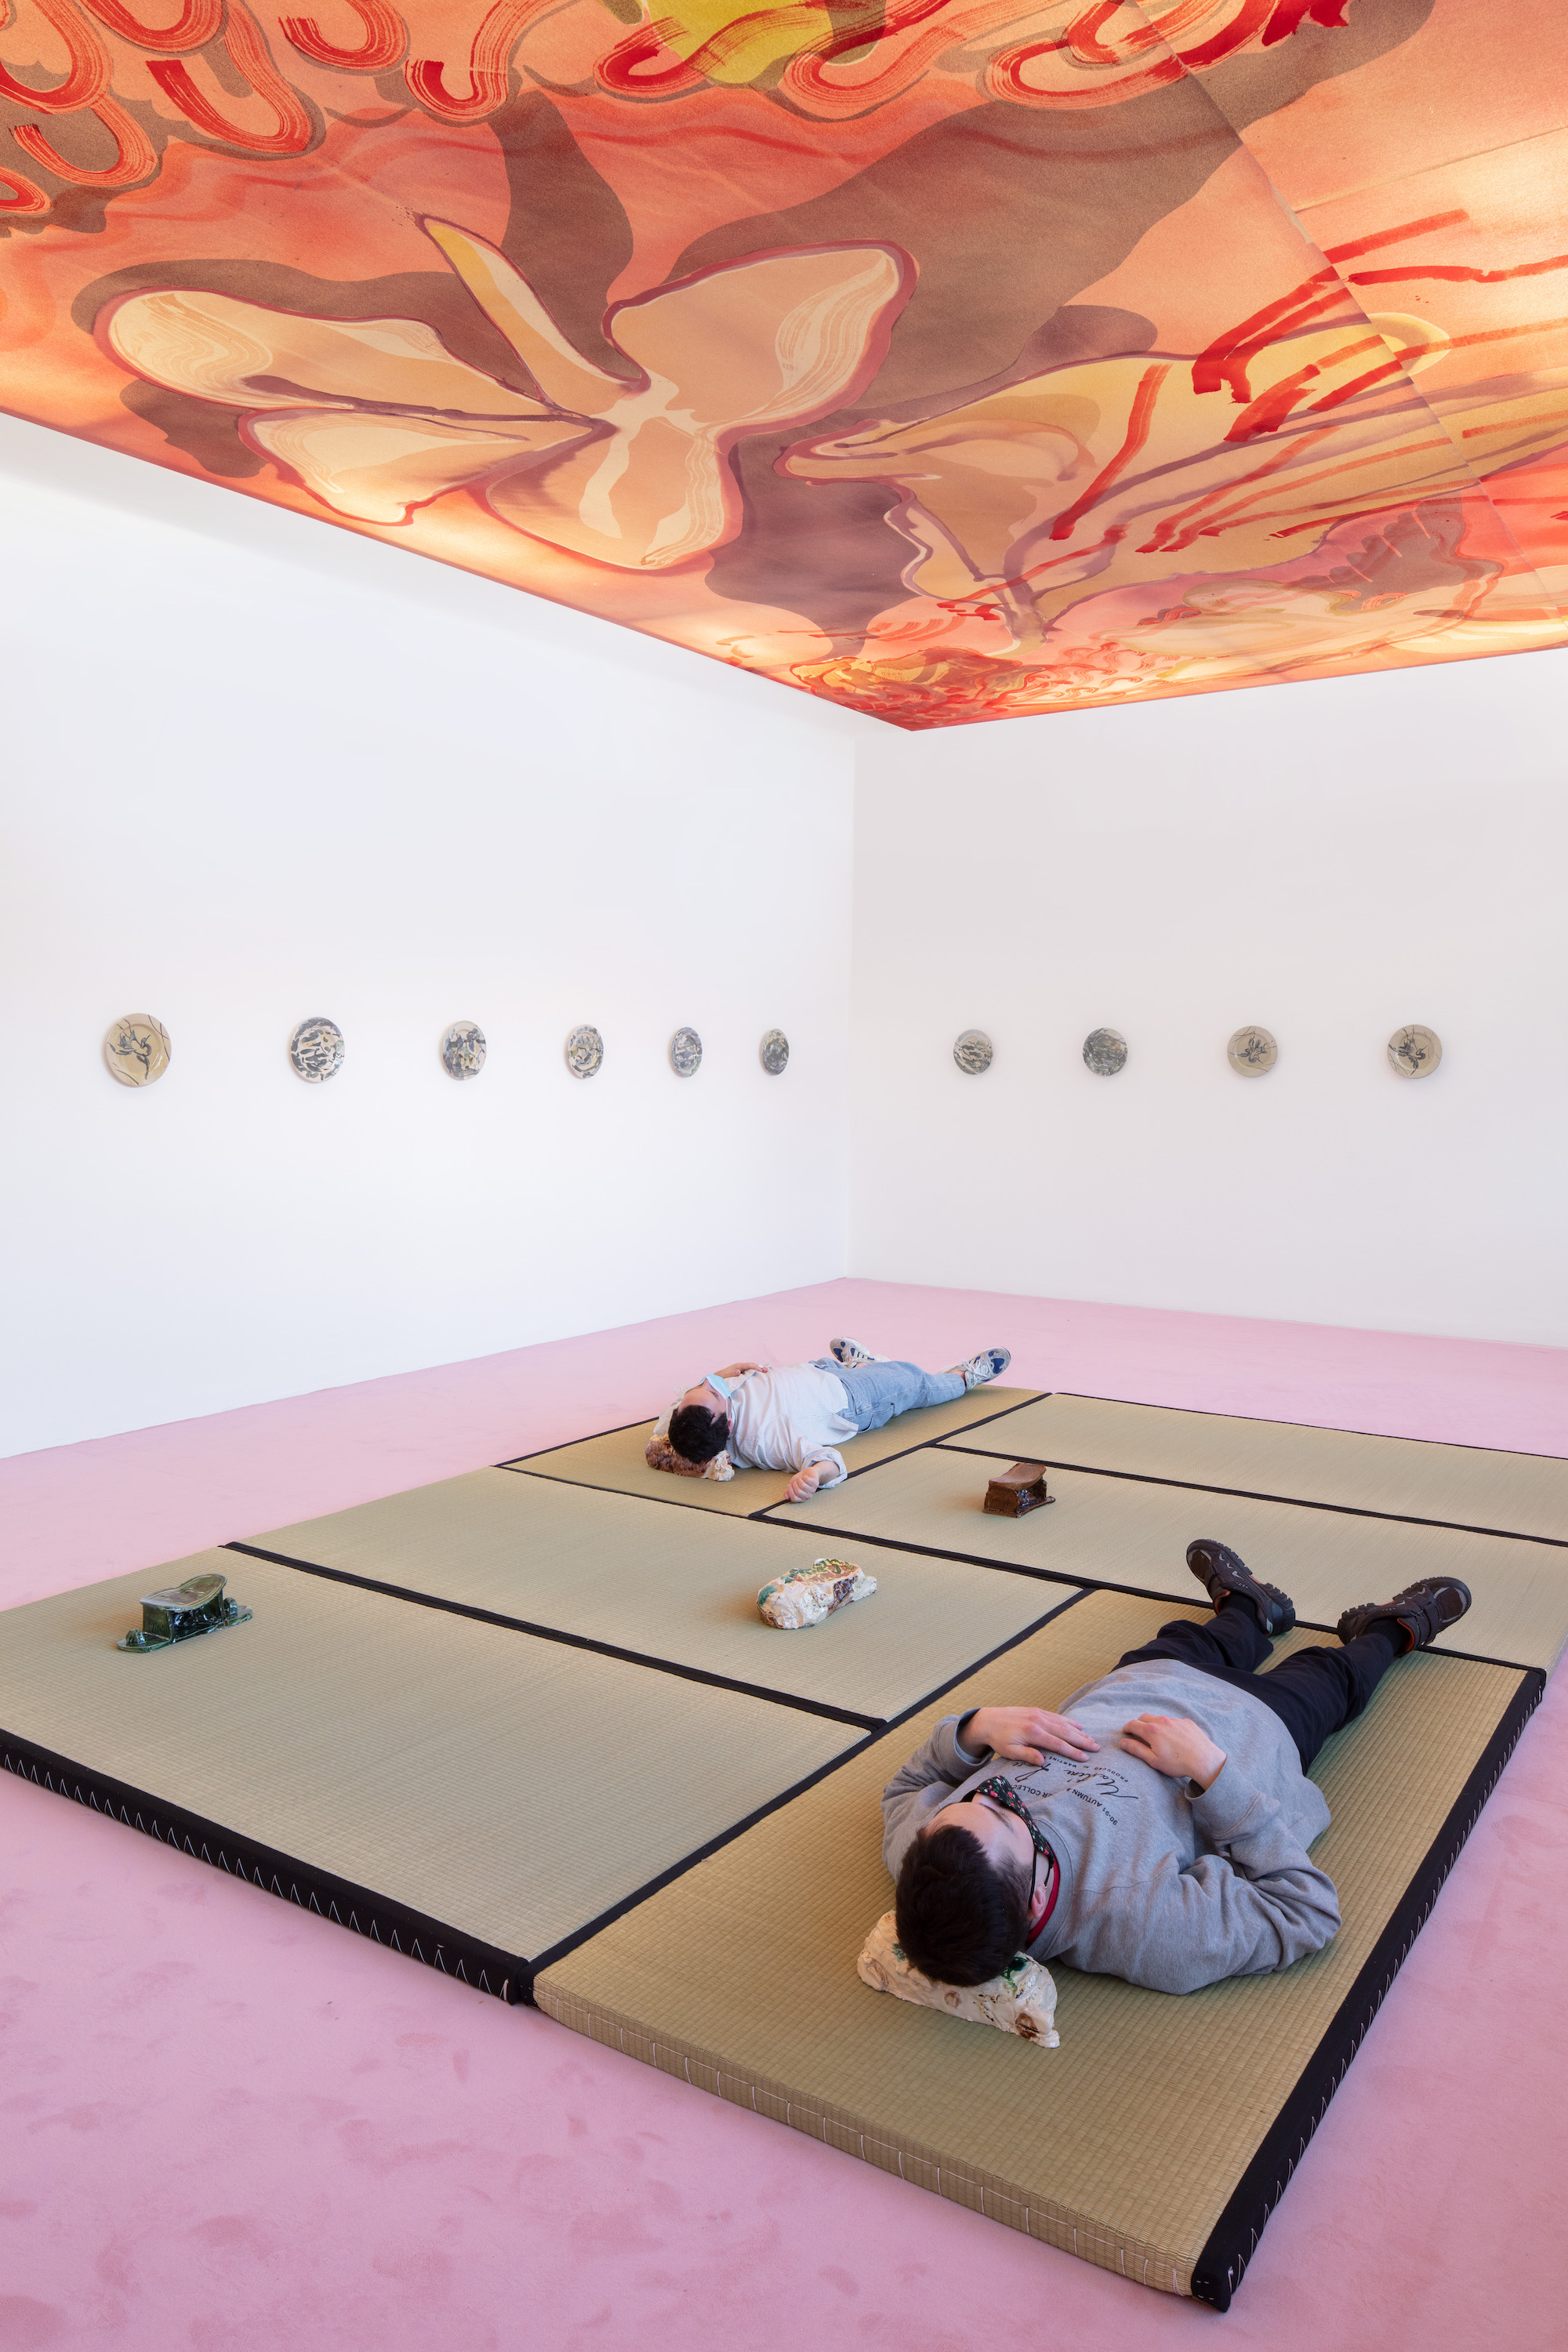 Installation view: Matthew Lutz-Kinoy. Window to the Clouds; Salon Berlin, Museum Frieder Burda Matthew Lutz-Kinoy, Wings of Flamingos, Camargue, 2020. Acrylic on canvas, 380 x 690 cm. Courtesy of the artist; Keramikos 3, 2019. Hand-painted set of 20 glazed ceramic plates. Courtesy of the artist and Mendes Wood DM São Paulo, New York and Brussels; Pillow In Cognac With Relaxed Figure, 2018; Pillow In The Form Of Reclining Child With Polkadots, 2018; Pillow In Green With Relaxing Figure, 2018; Pillow In The Form Of Reclining Child With Landscape, 2018; Pillow In The Form Of Reclining Child, Fishing Net, 2018. Glazed ceramics, dimensions variable. Courtesy of the artist and Fitzpatrick Gallery; Photo: Thomas Bruns